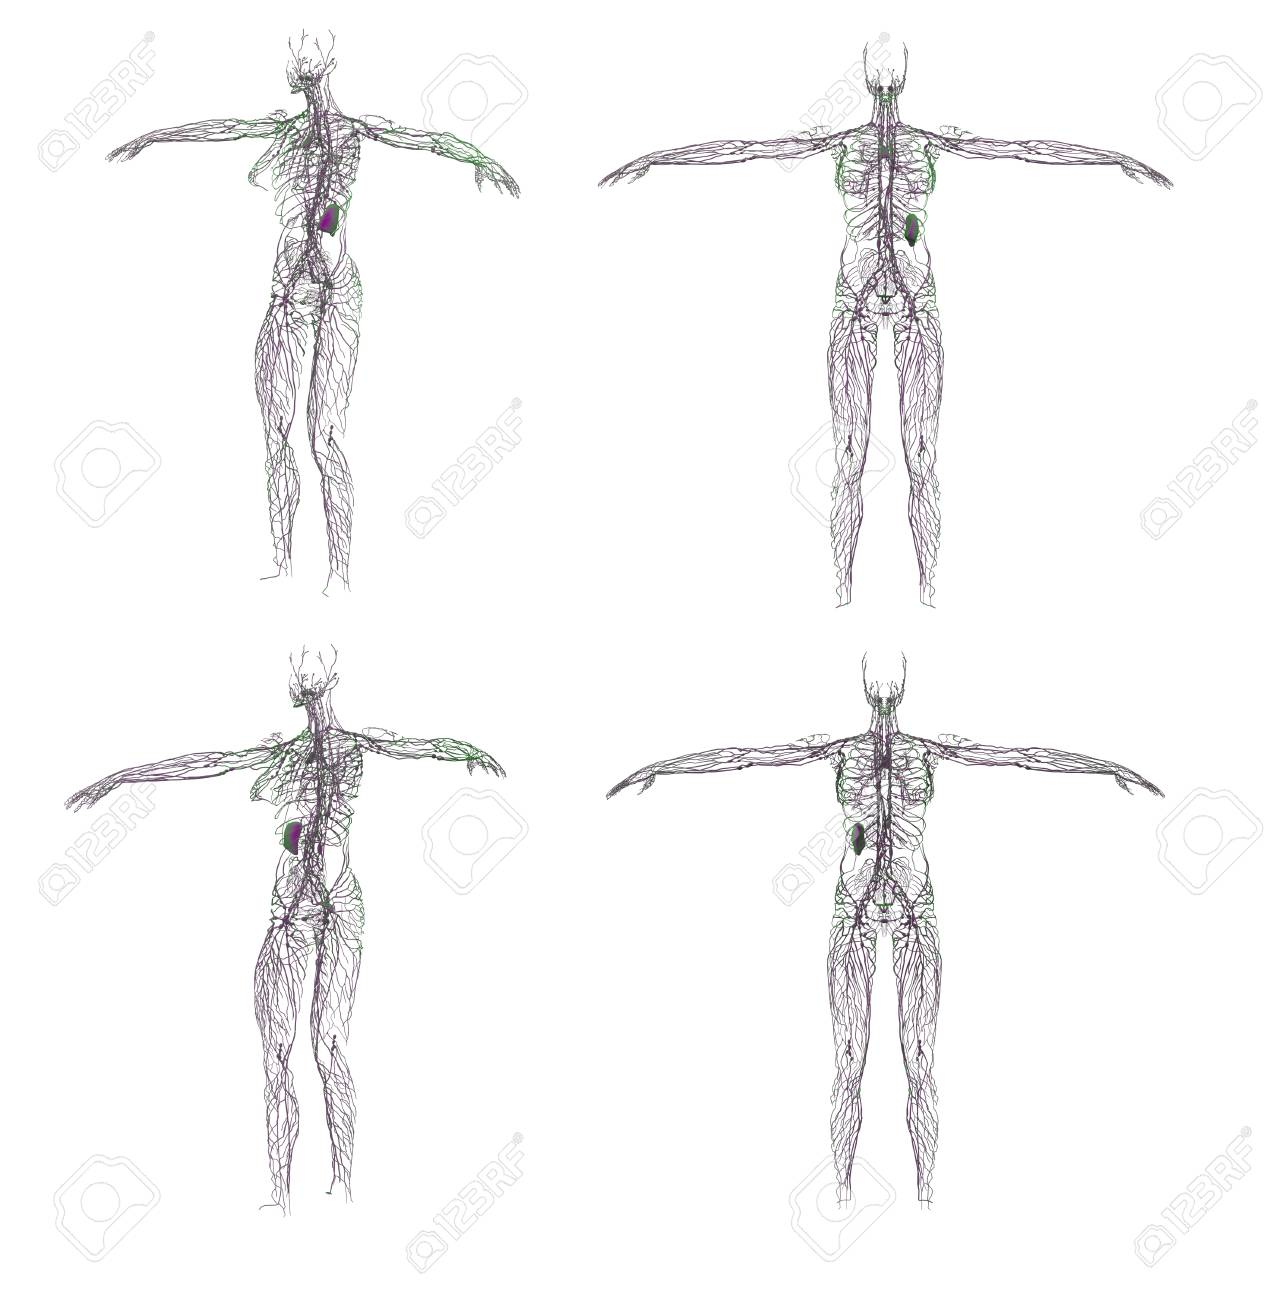 3d Rendering Illustration Of The Lymphatic System Stock Photo